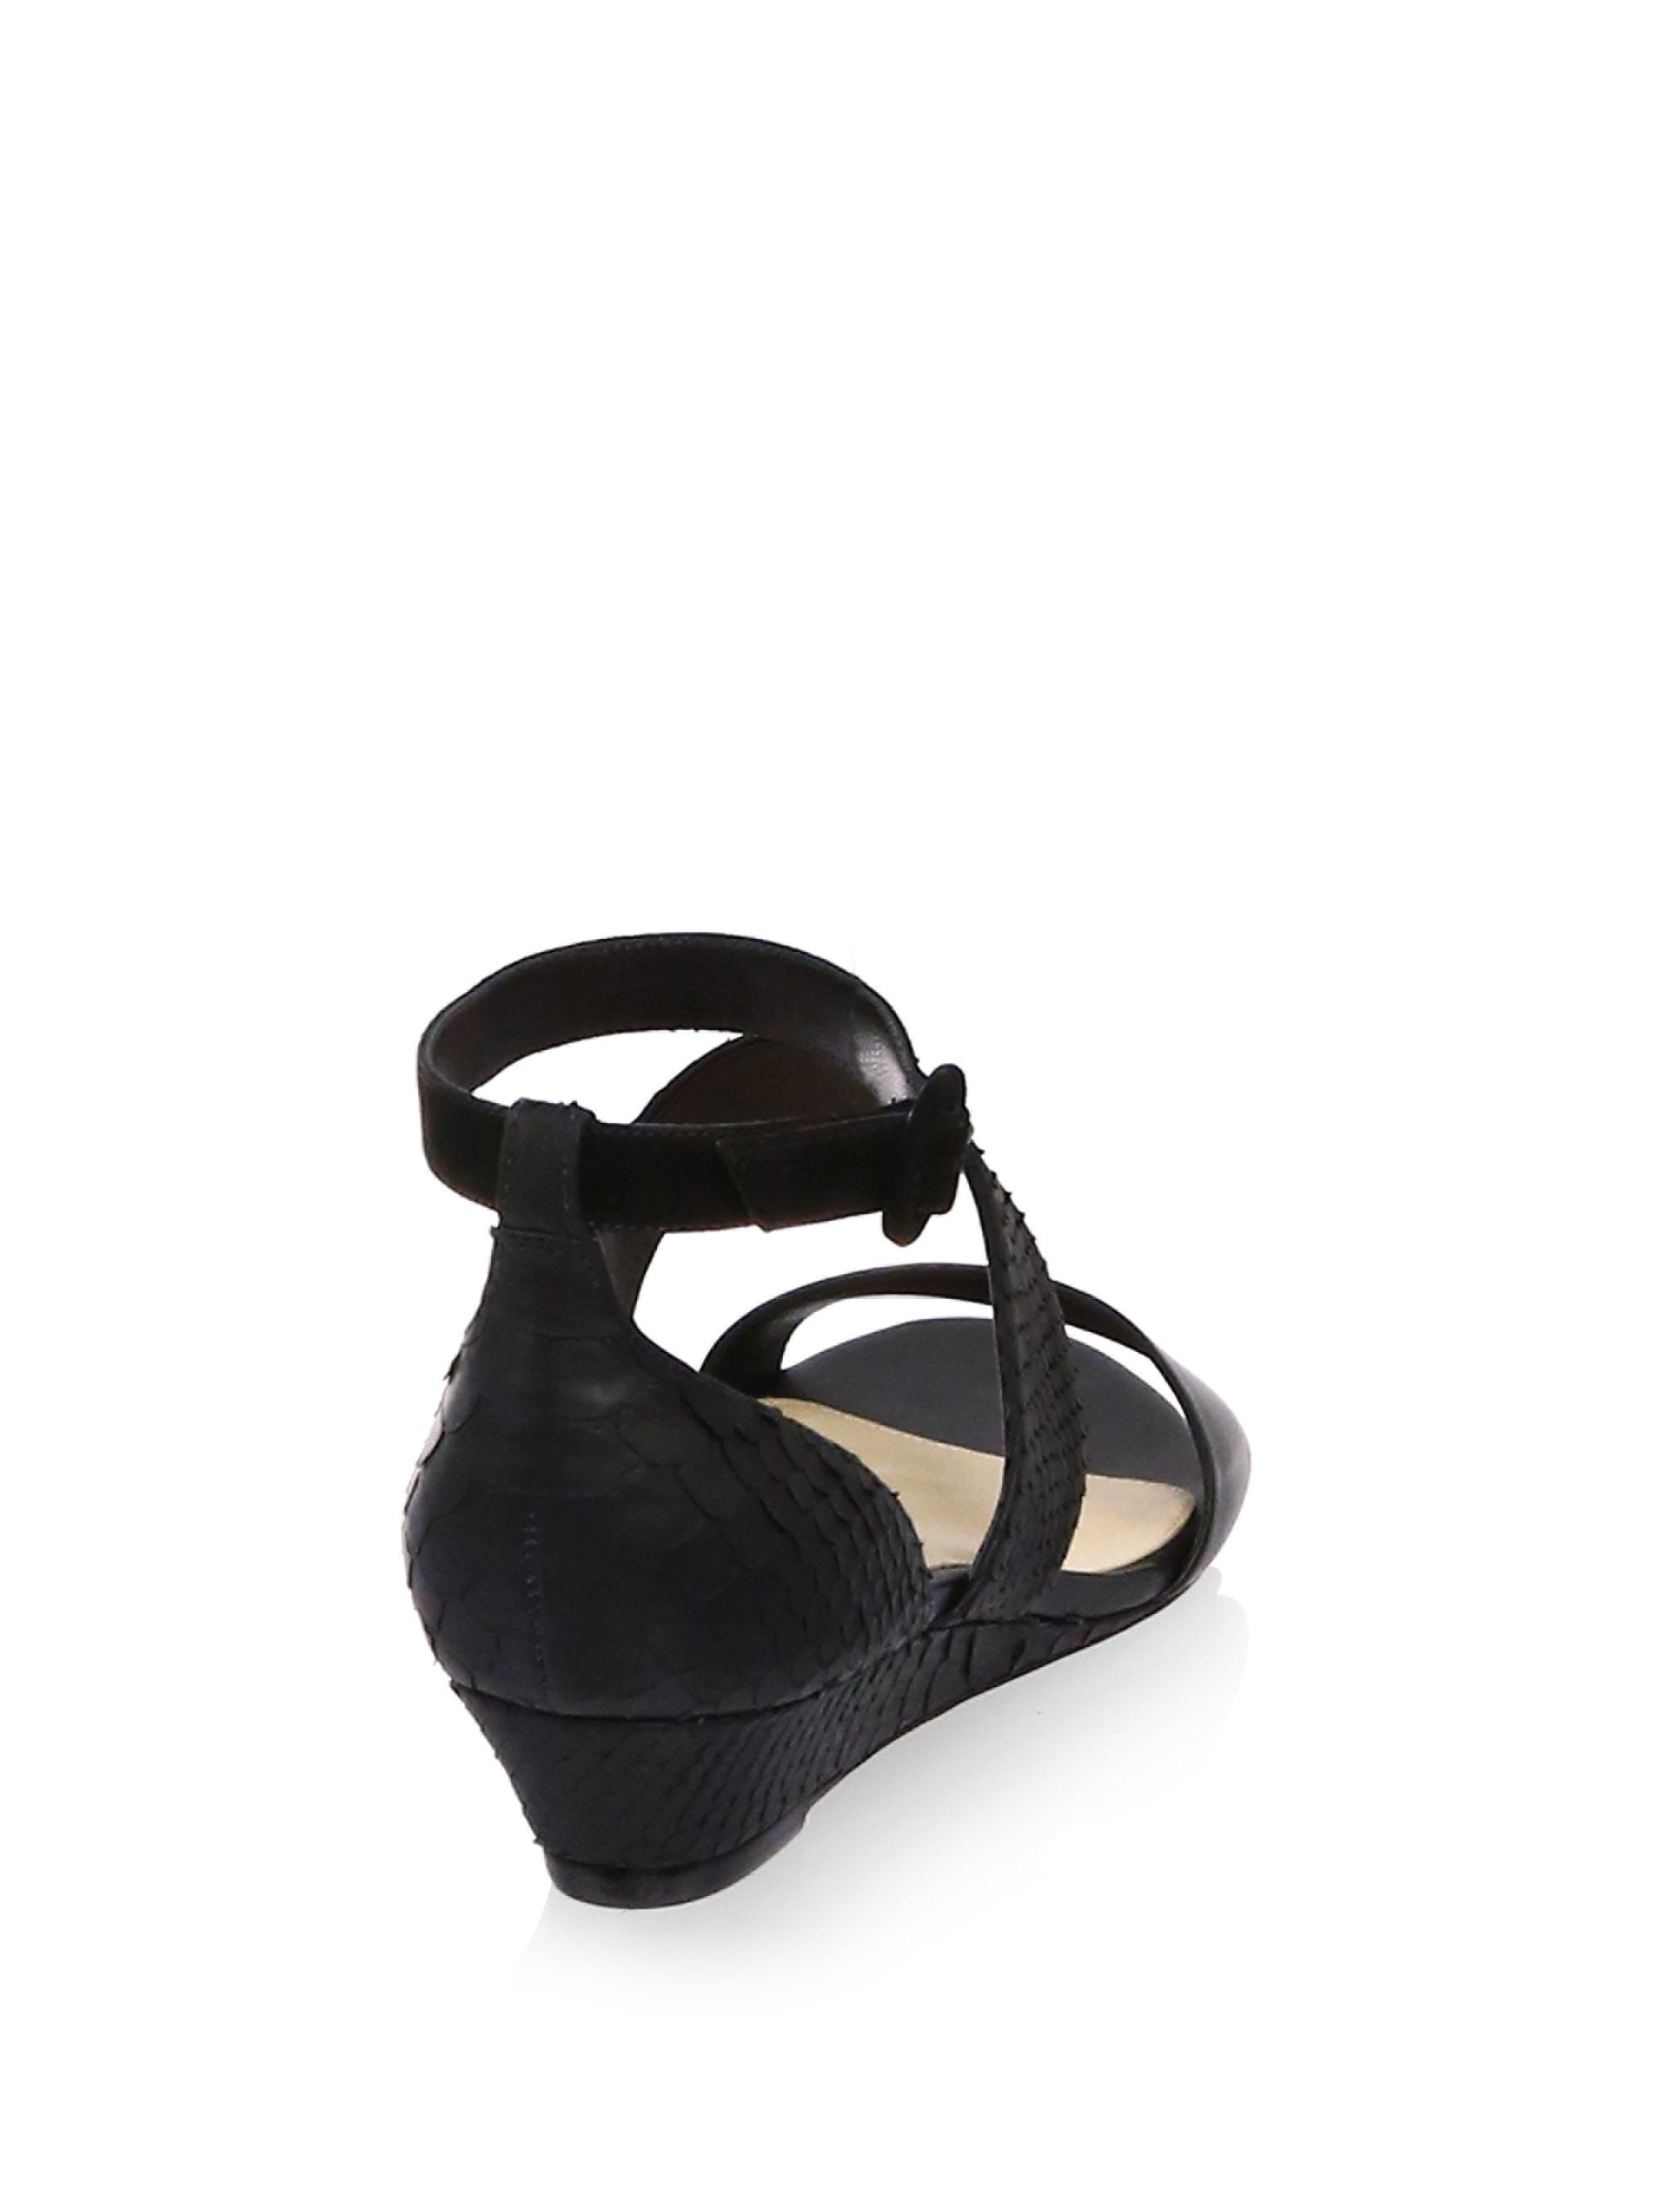 ALEXANDRE BIRMAN New Yanna Leather Platform Sandals jqgNC